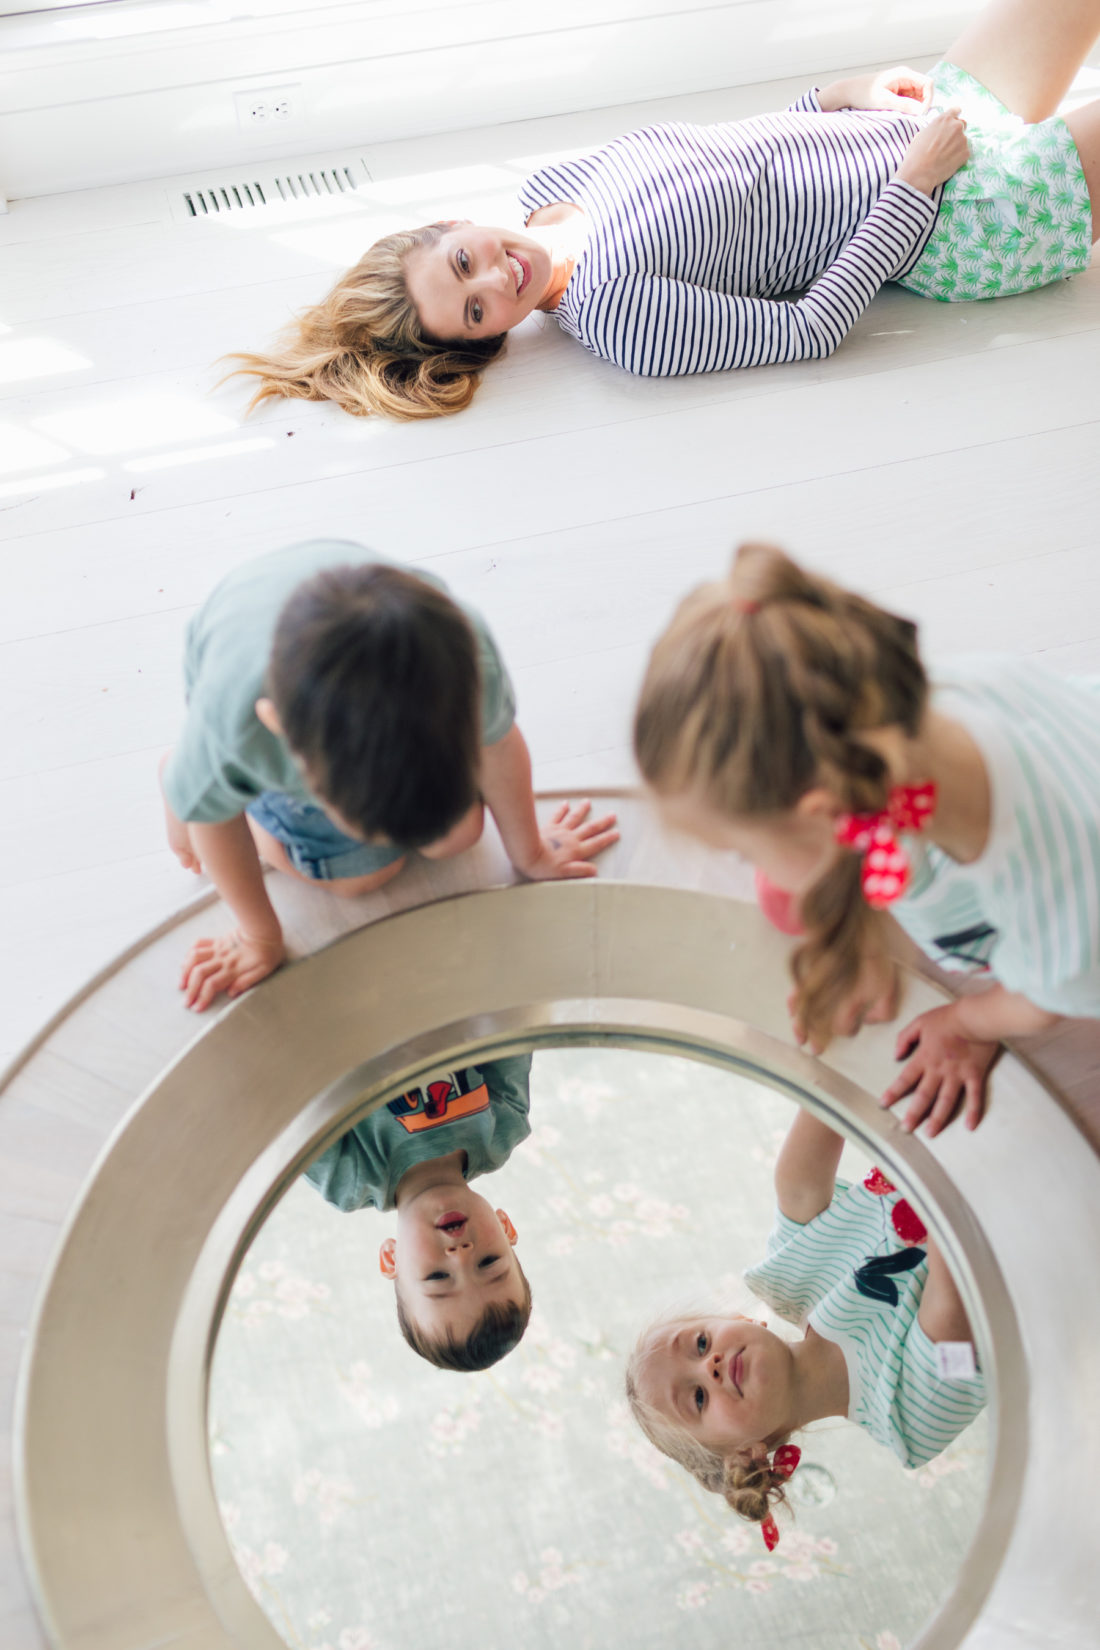 Eva Amurri Martino of Happily Eva After lies on the floor of her new house in Connecticut while her kids Marlowe and Major gaze into an unhung wall mirror